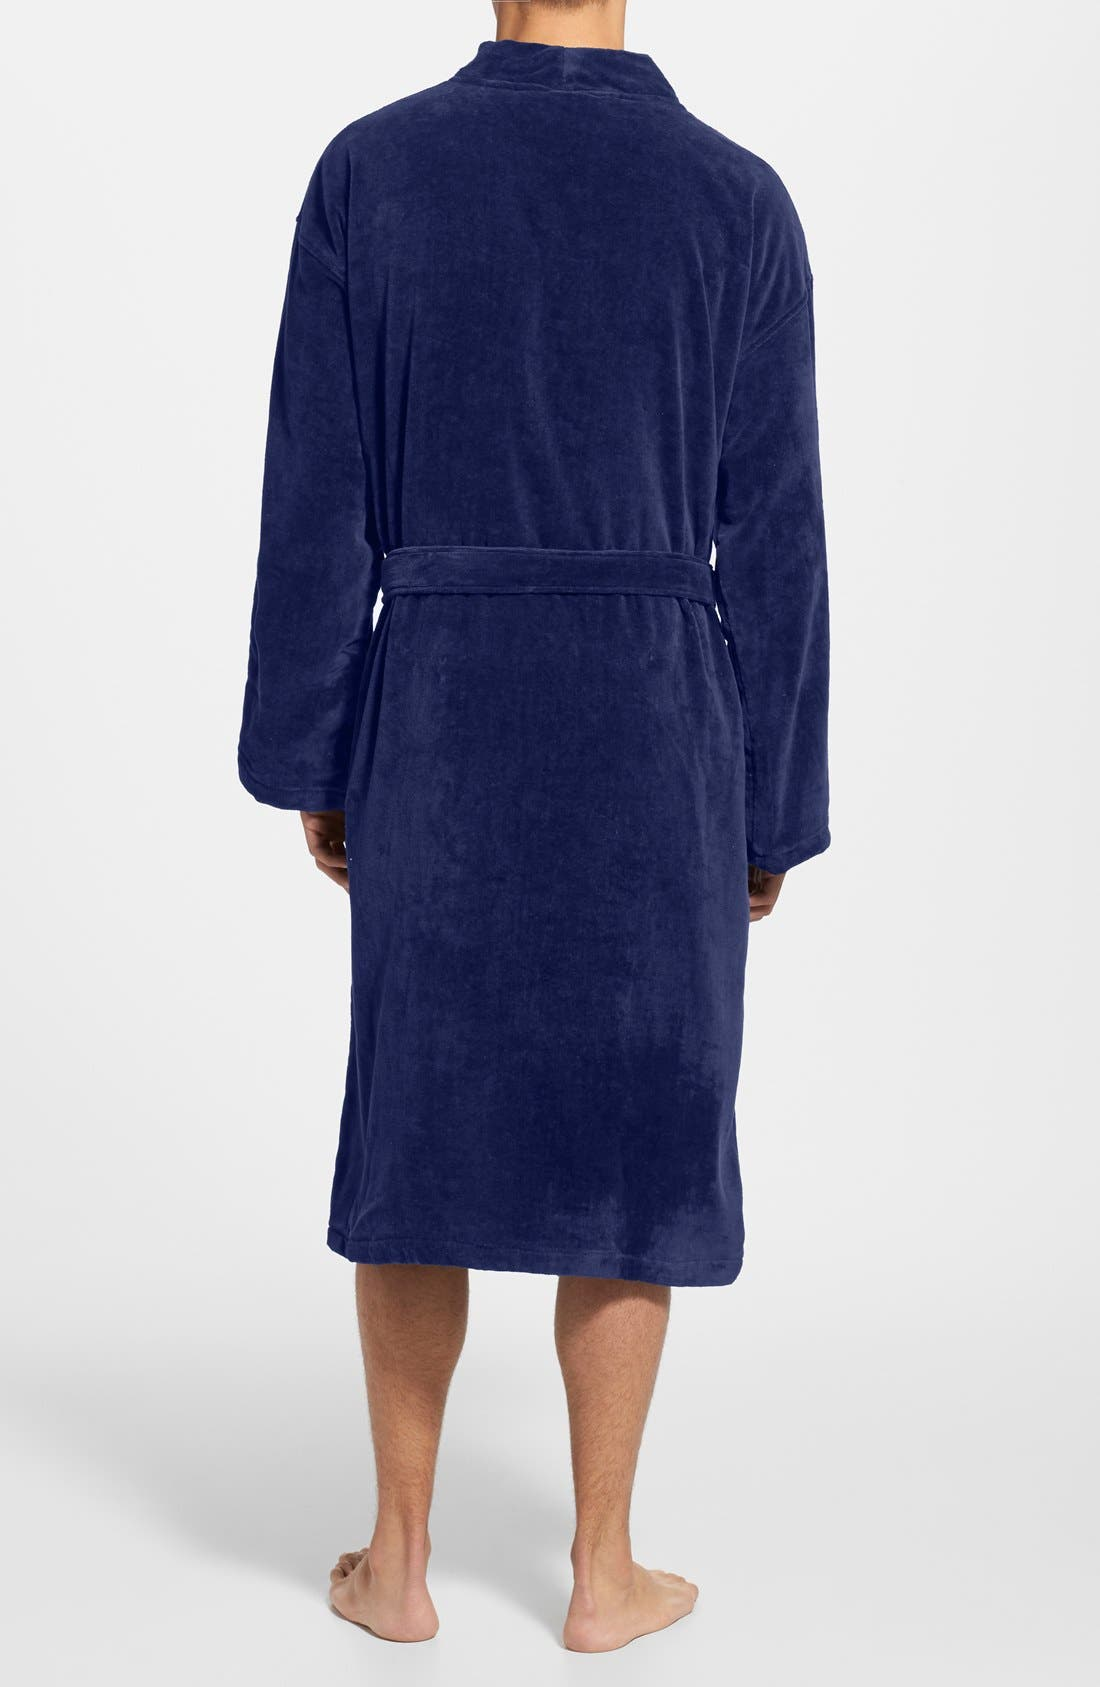 POLO RALPH LAUREN, Cotton Fleece Robe, Alternate thumbnail 2, color, NAVY